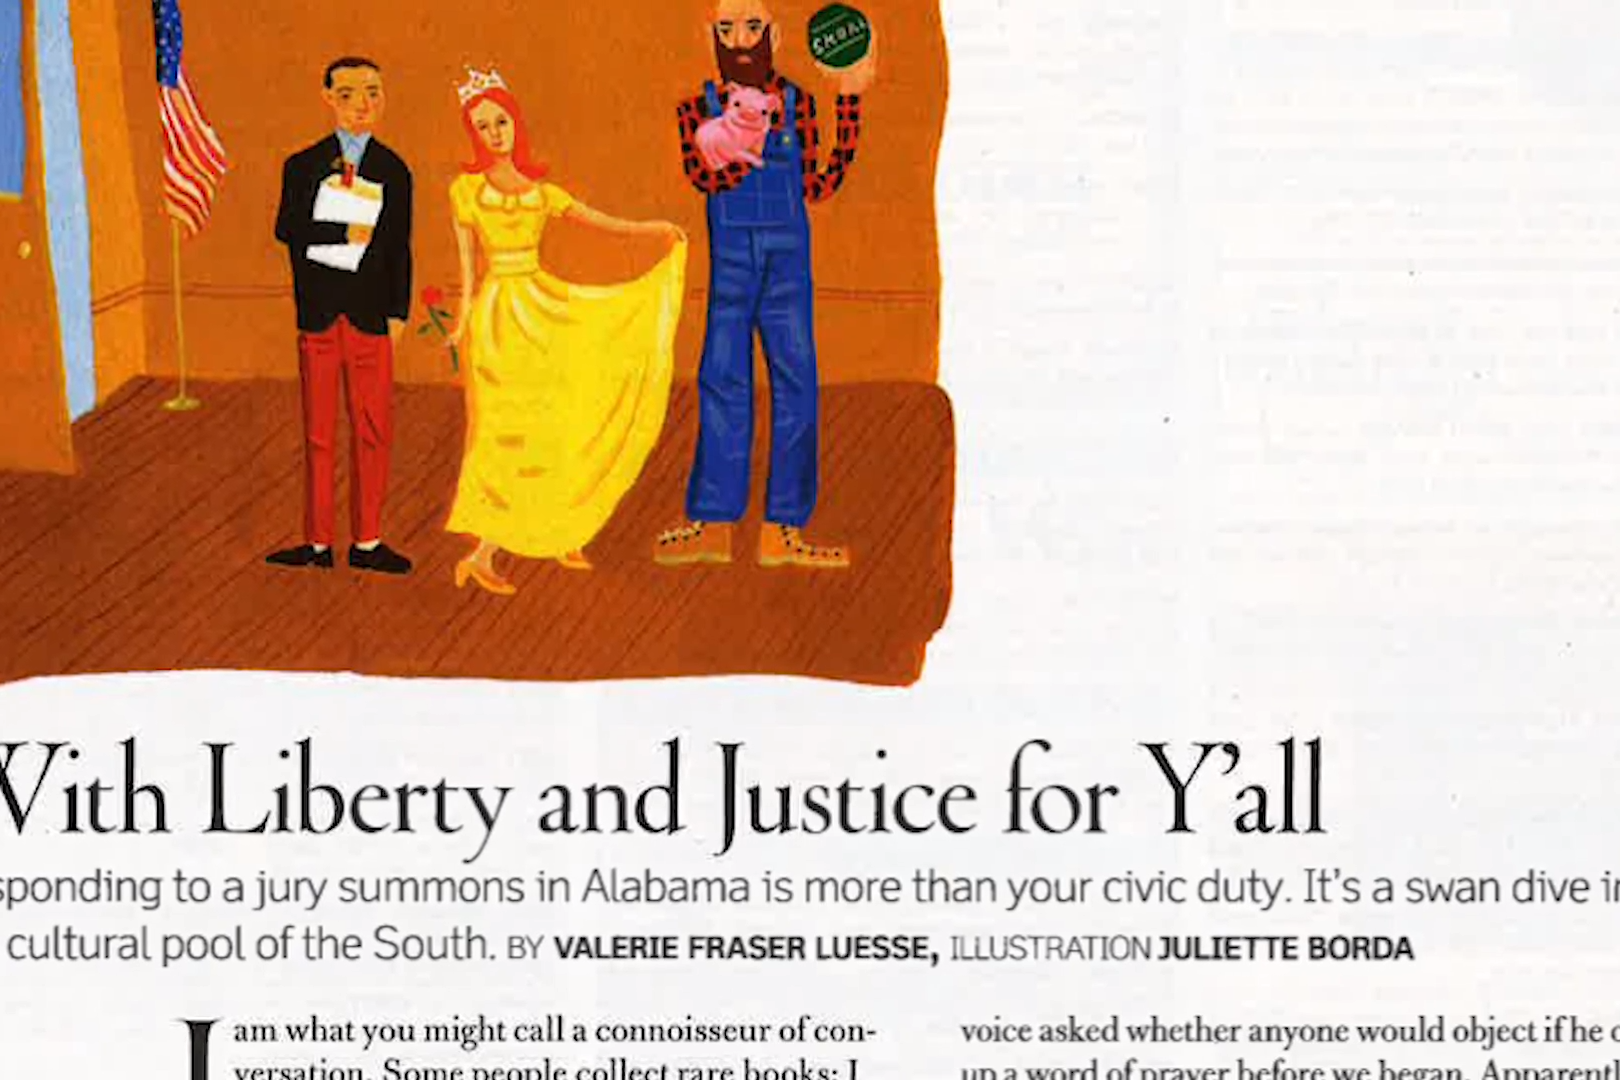 Stories Of The South: With Liberty and Justice For Y'all